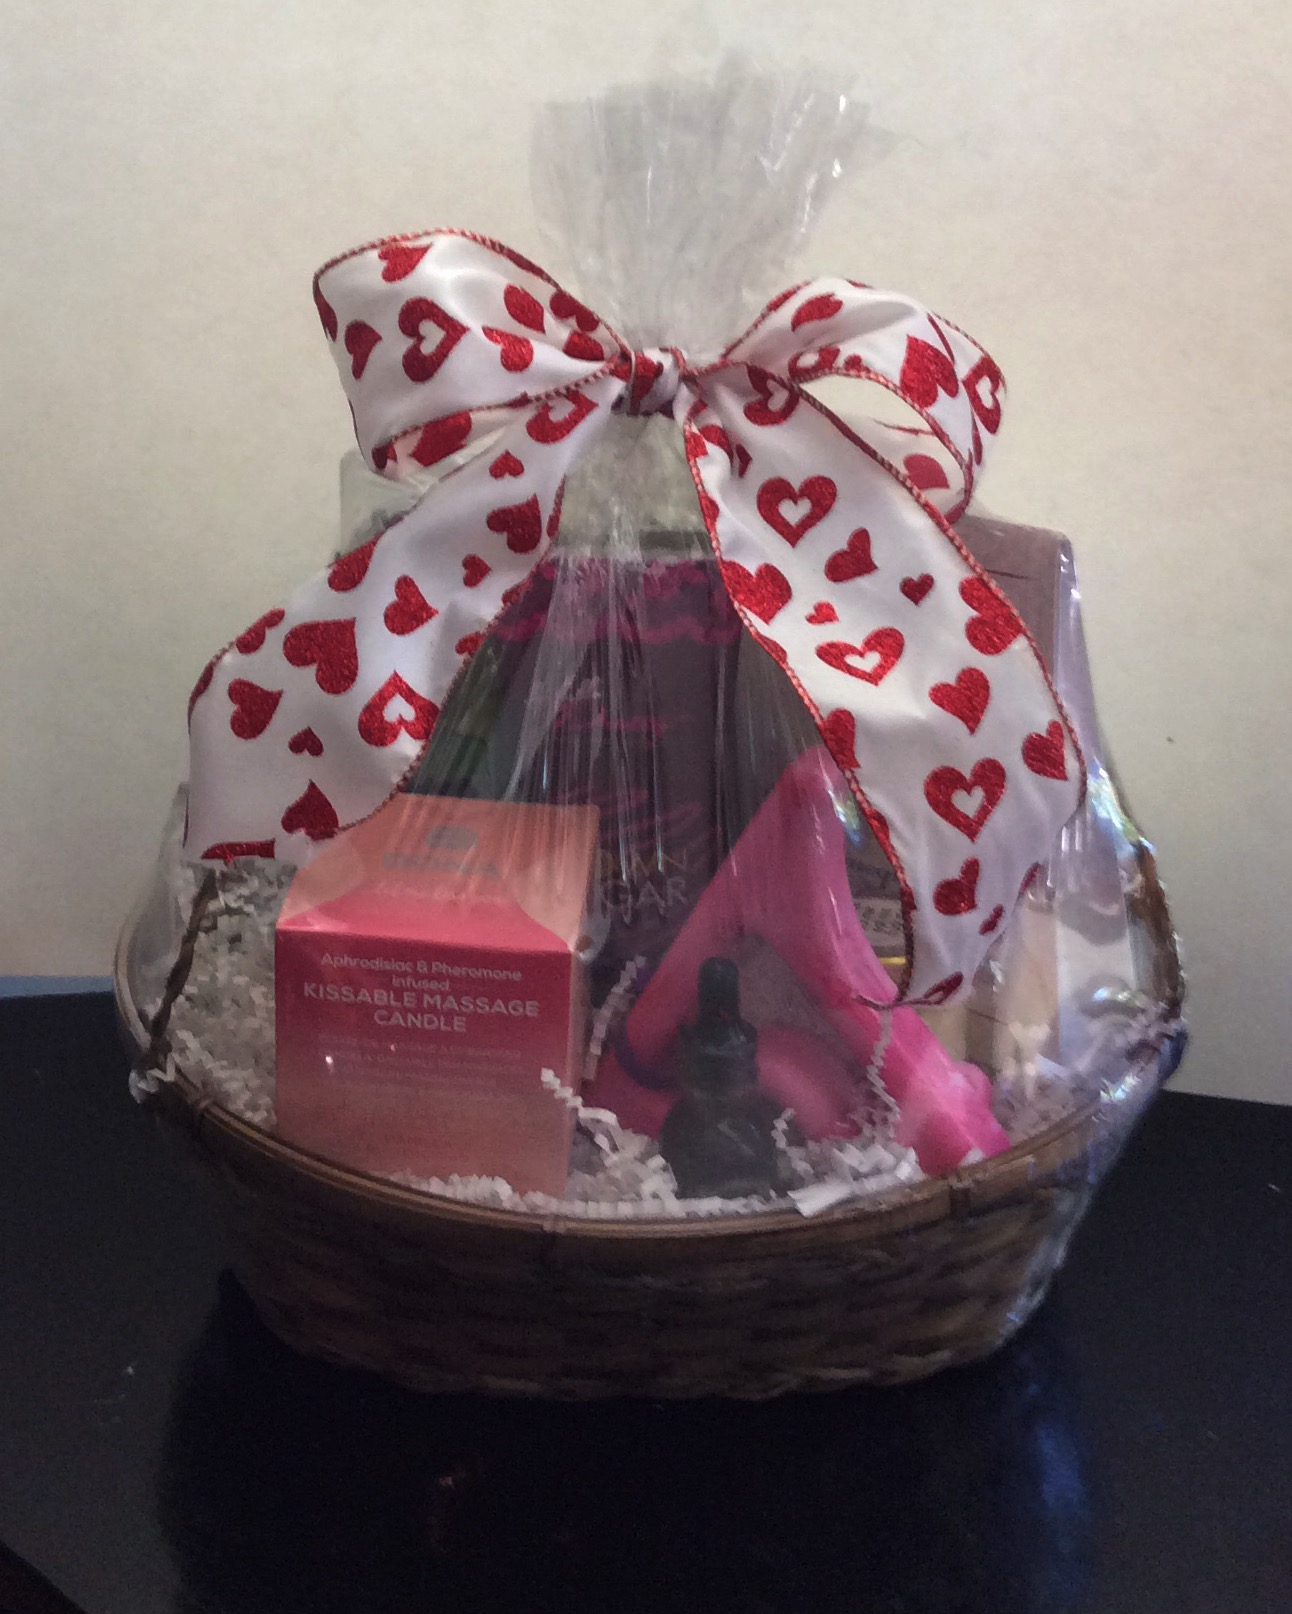 A Year of Love Gift Basket